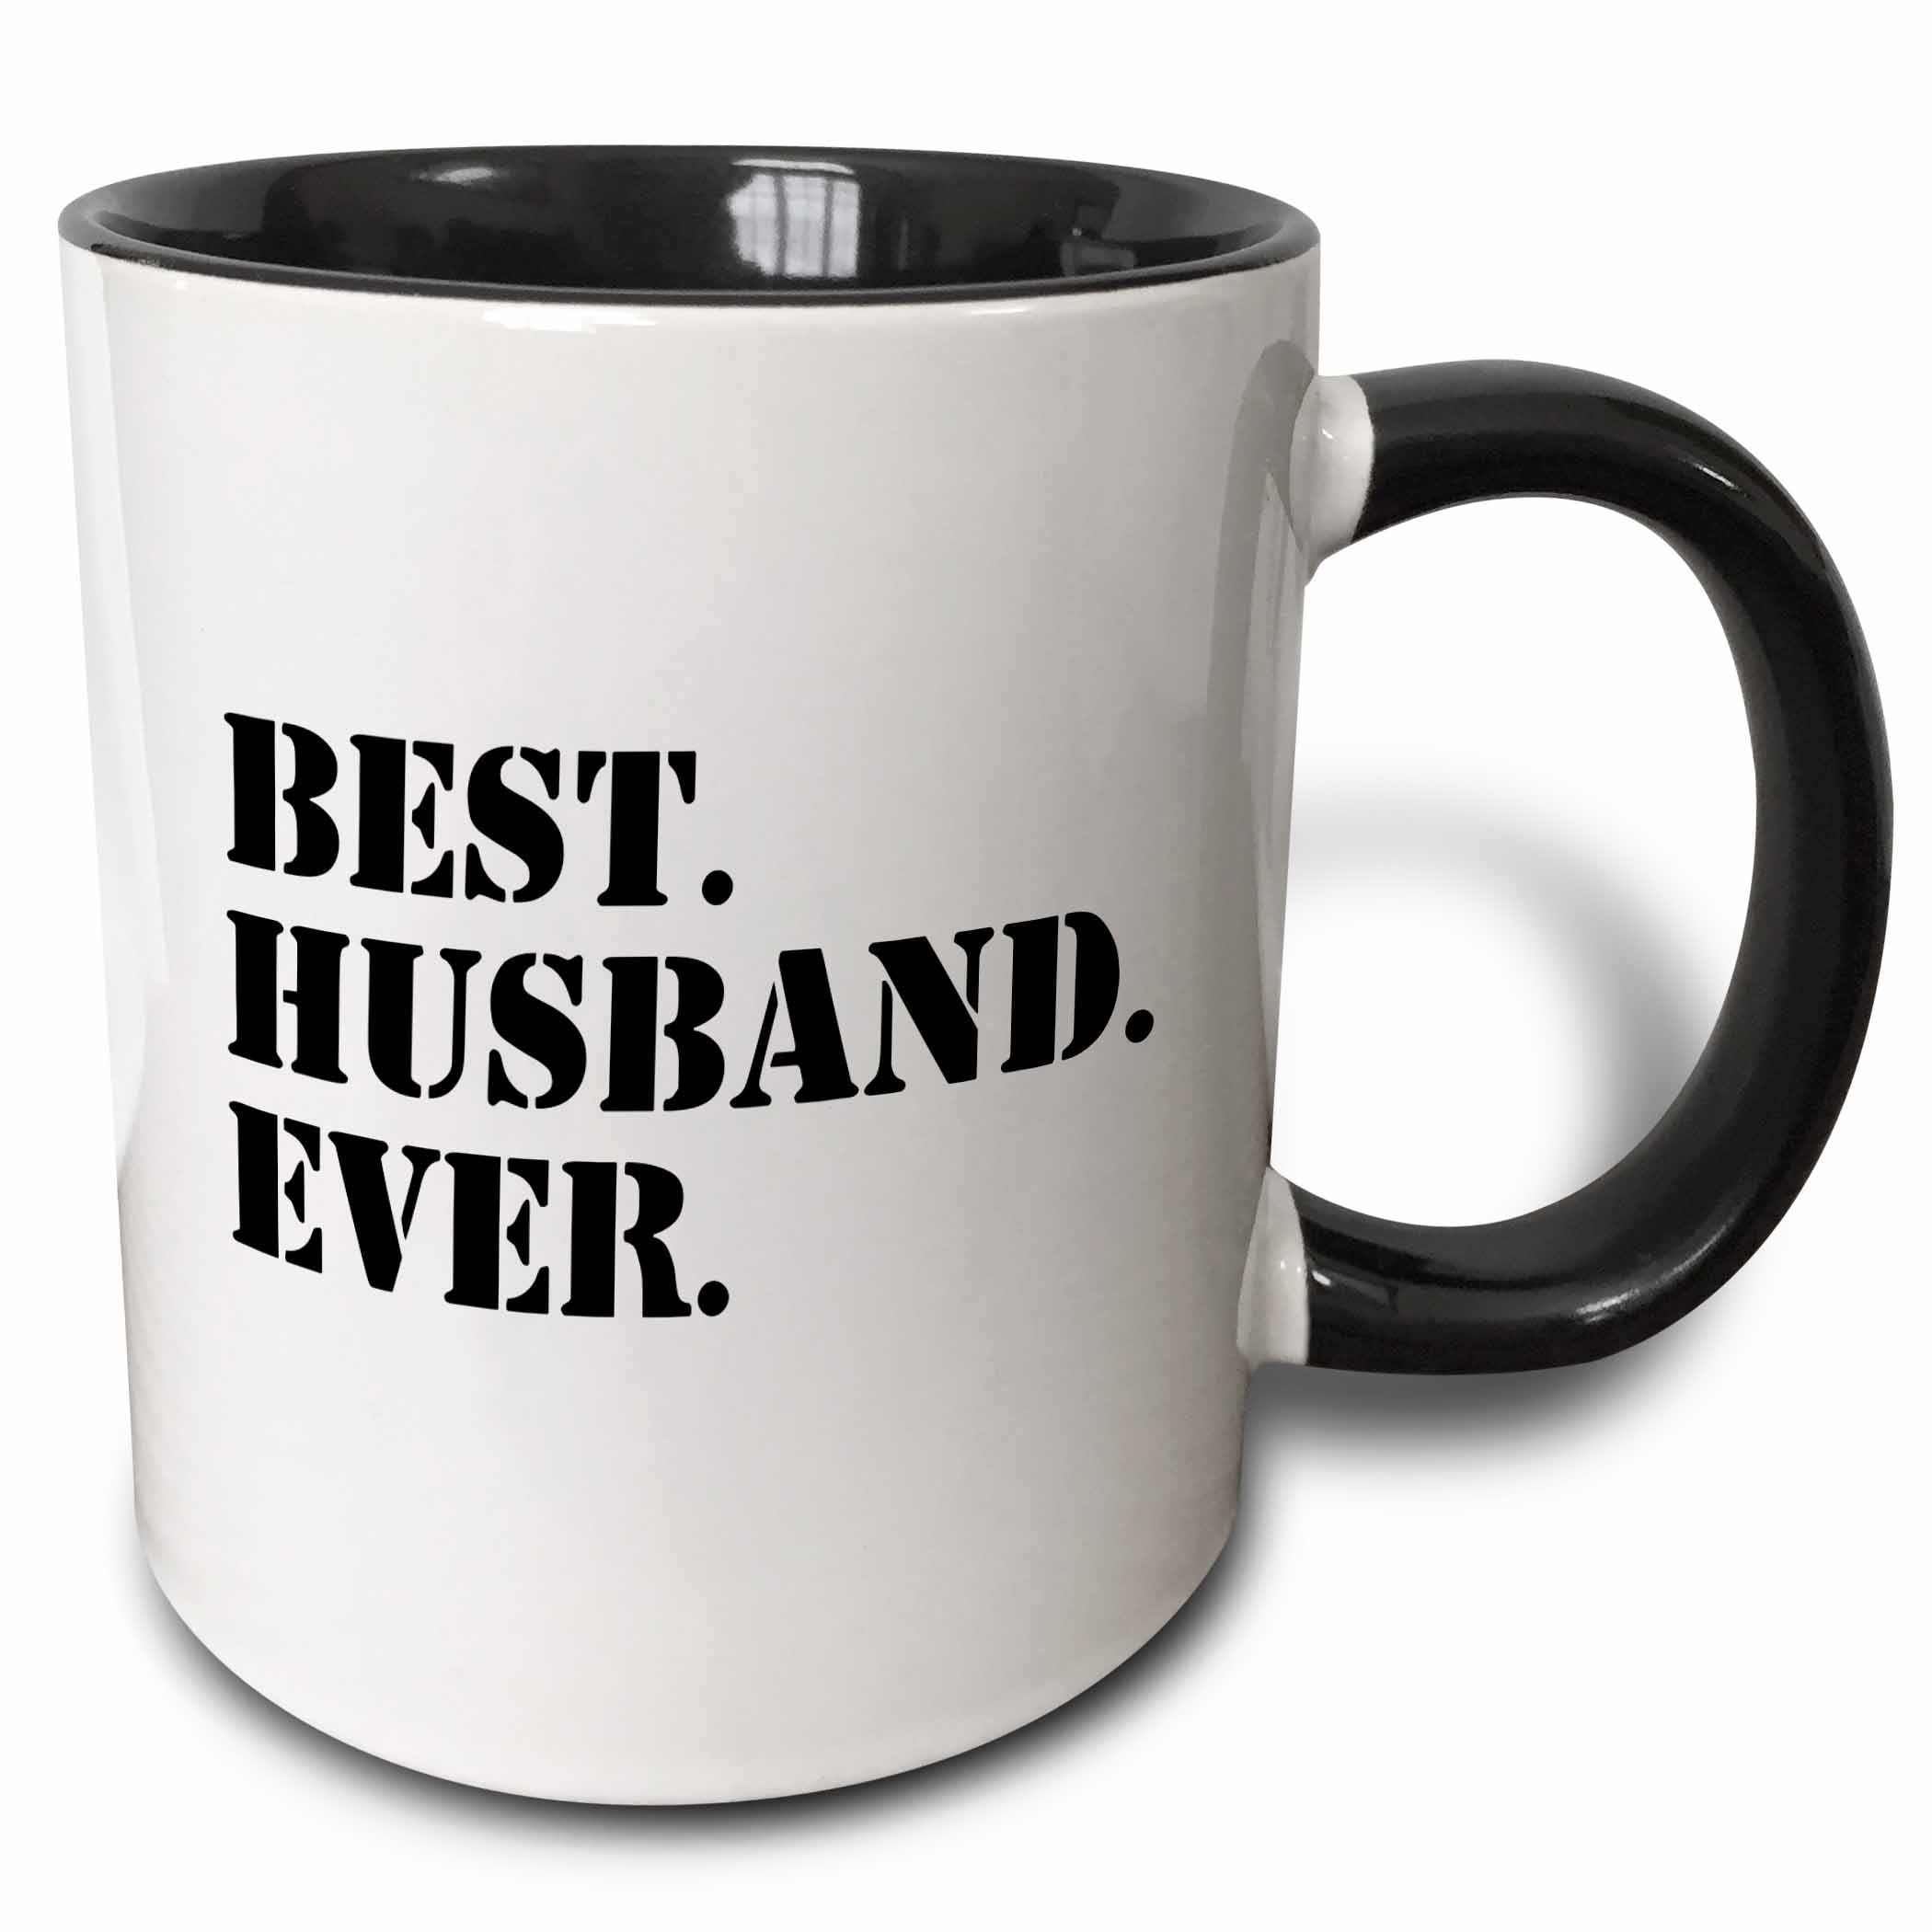 3dRose Best Husband Ever - fun romantic married wedded love gifts for him for anniversary or Valentines day, Two Tone Black Mug, 11oz